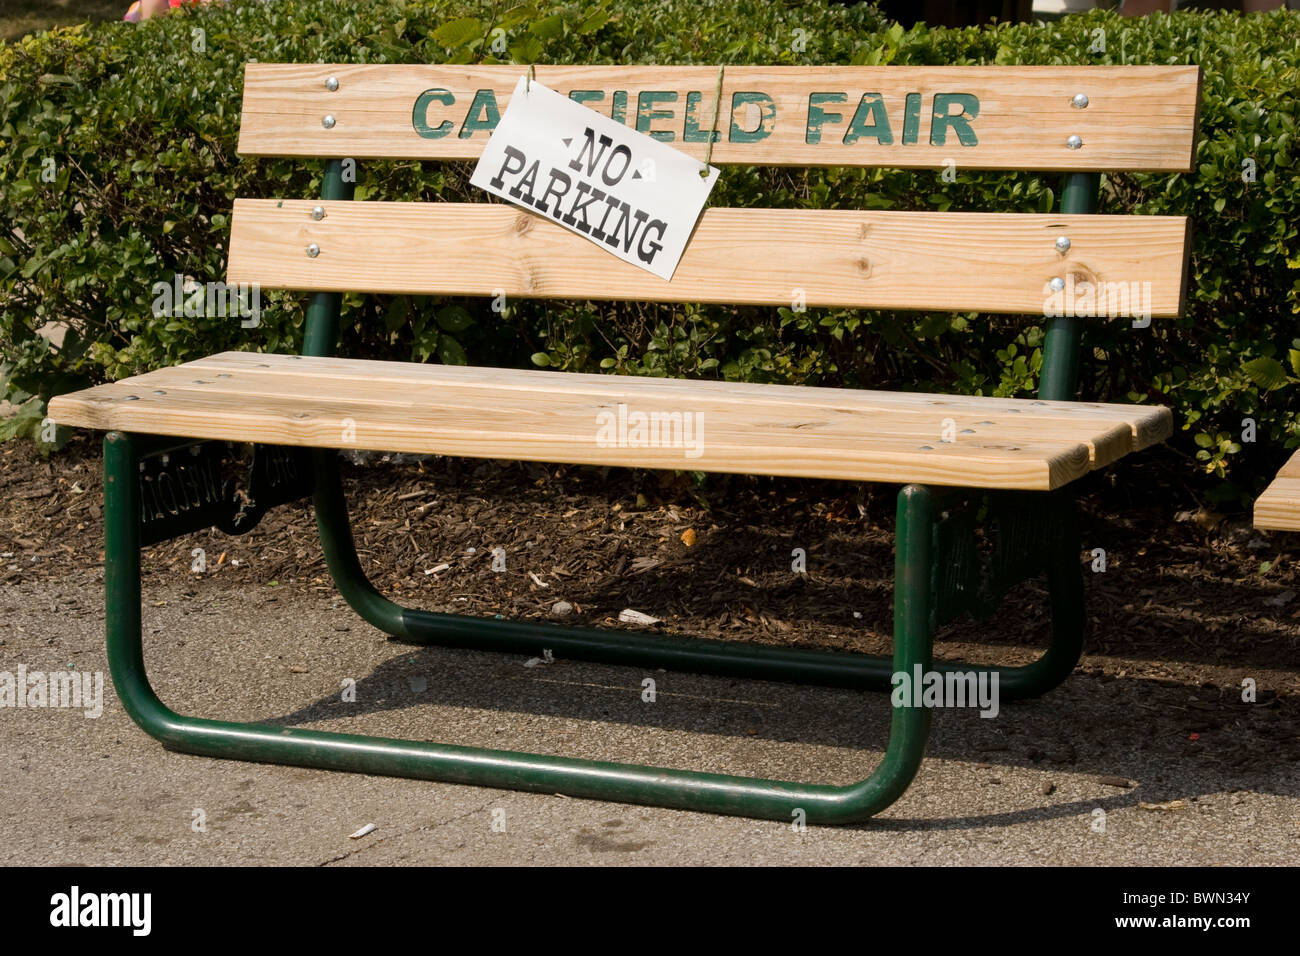 No Parking sign on park bench at Canfield Fair, Mahoning County Fair, Canfield, Ohio, USA. - Stock Image